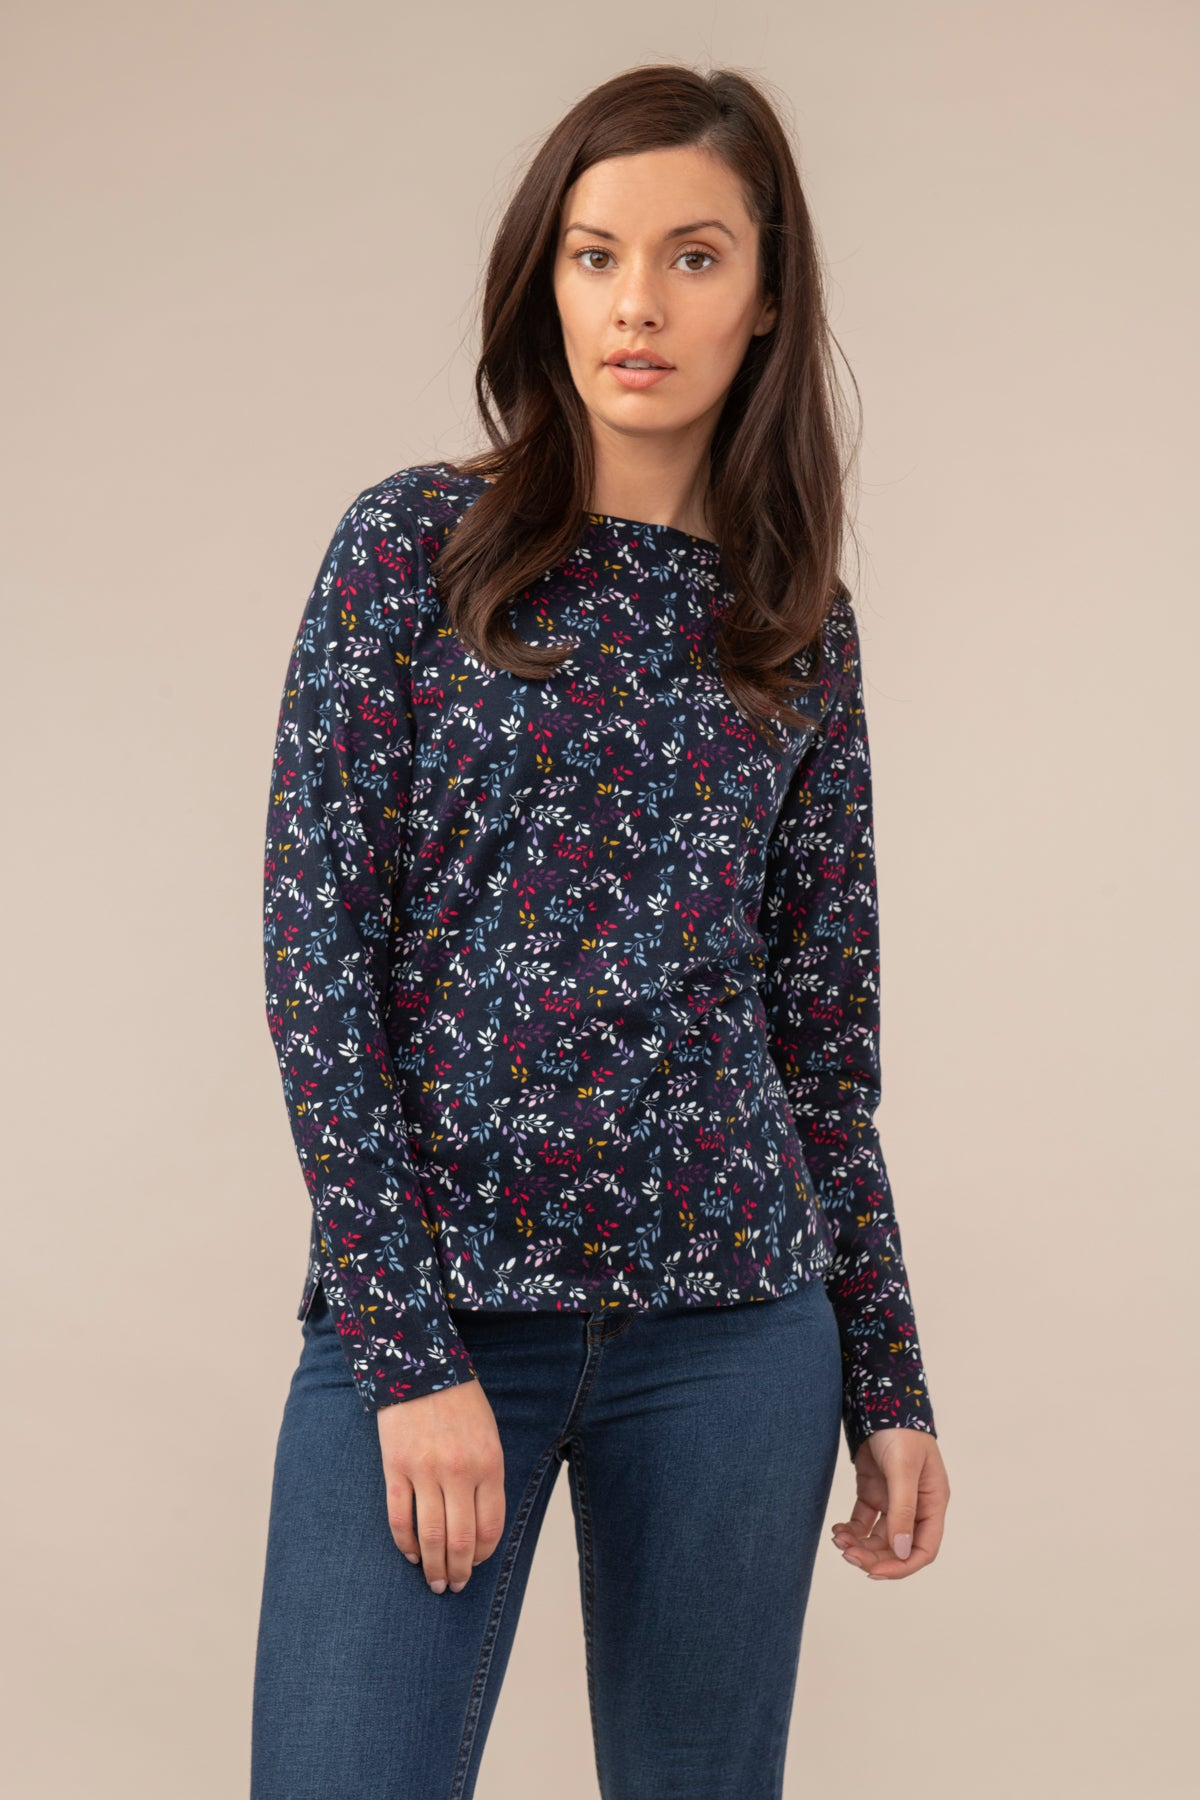 Lighthouse Causeway  - Womens Long Sleeve Top - Navy Leaf Print